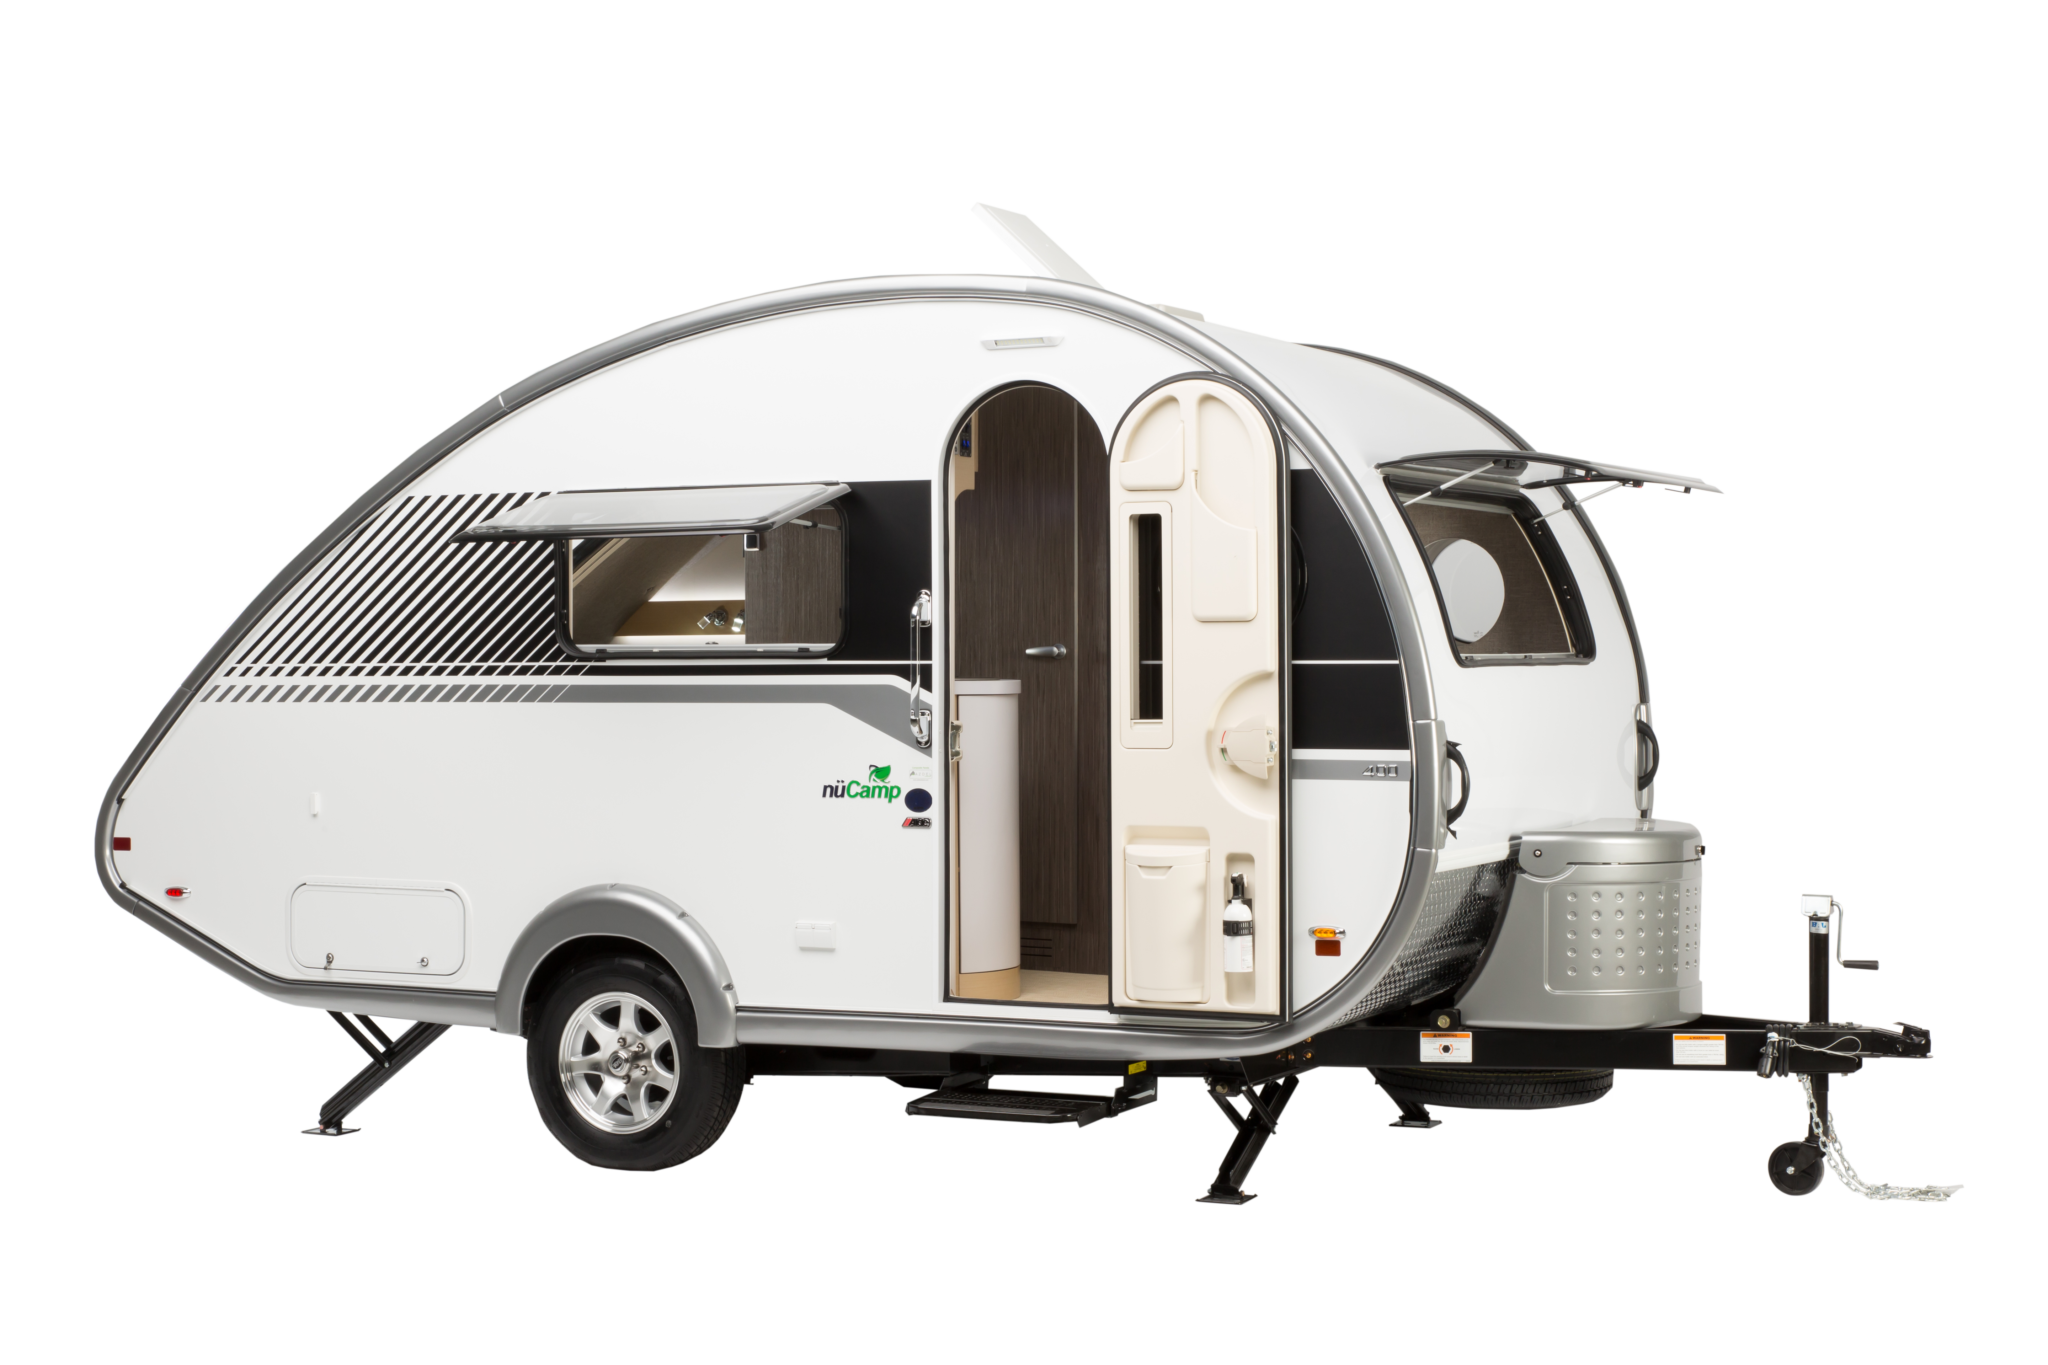 TAB 400 Floor Plan - nuCamp RV B Amp Mobile Homes on home brand, home dimensions, home sound systems, home books, home audio, home dj, home motor, home turntables, home accessories, home cabinets,